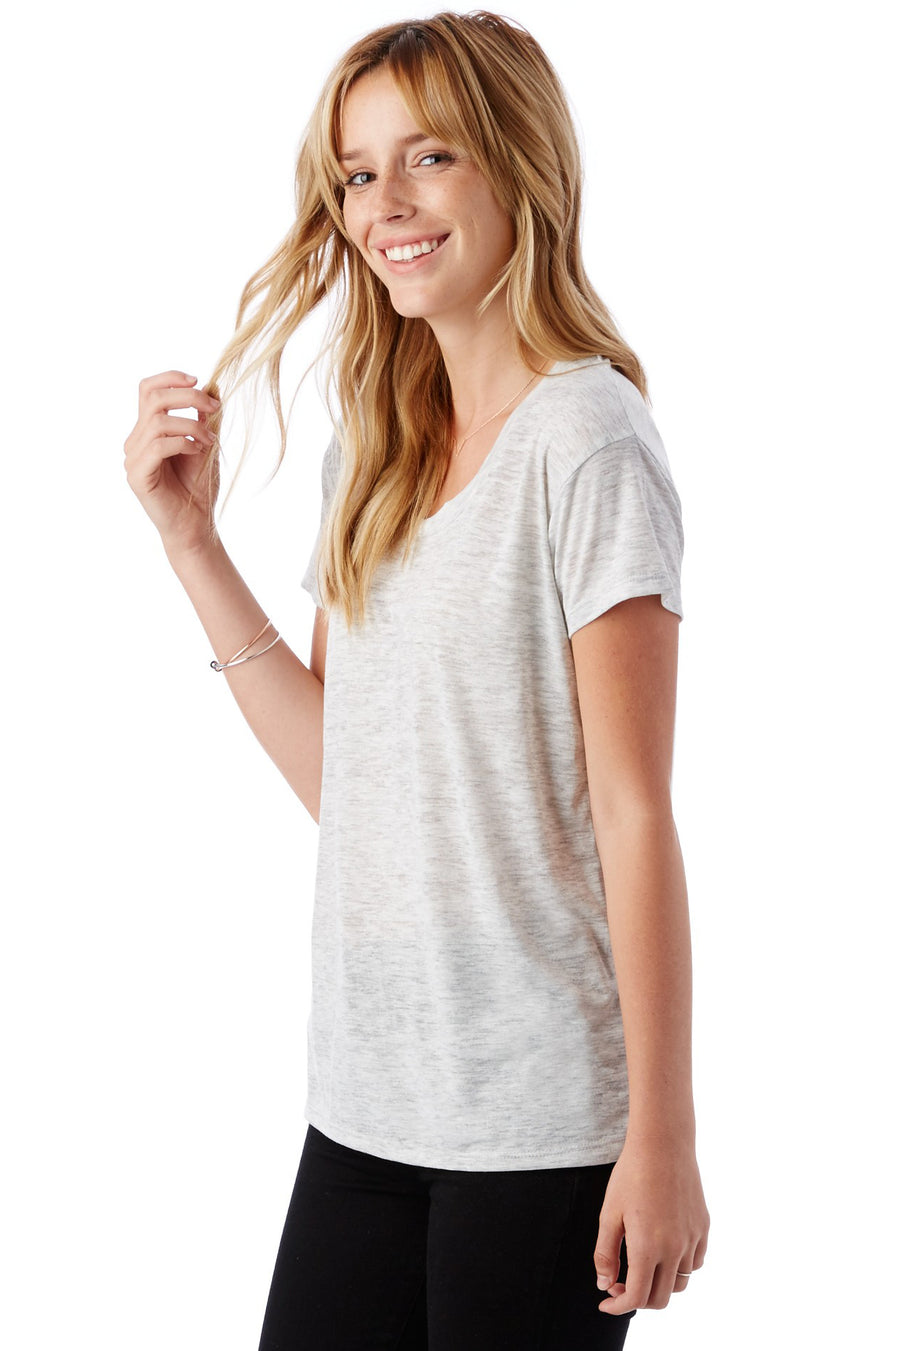 Kimber Tee - Oatmeal Heather